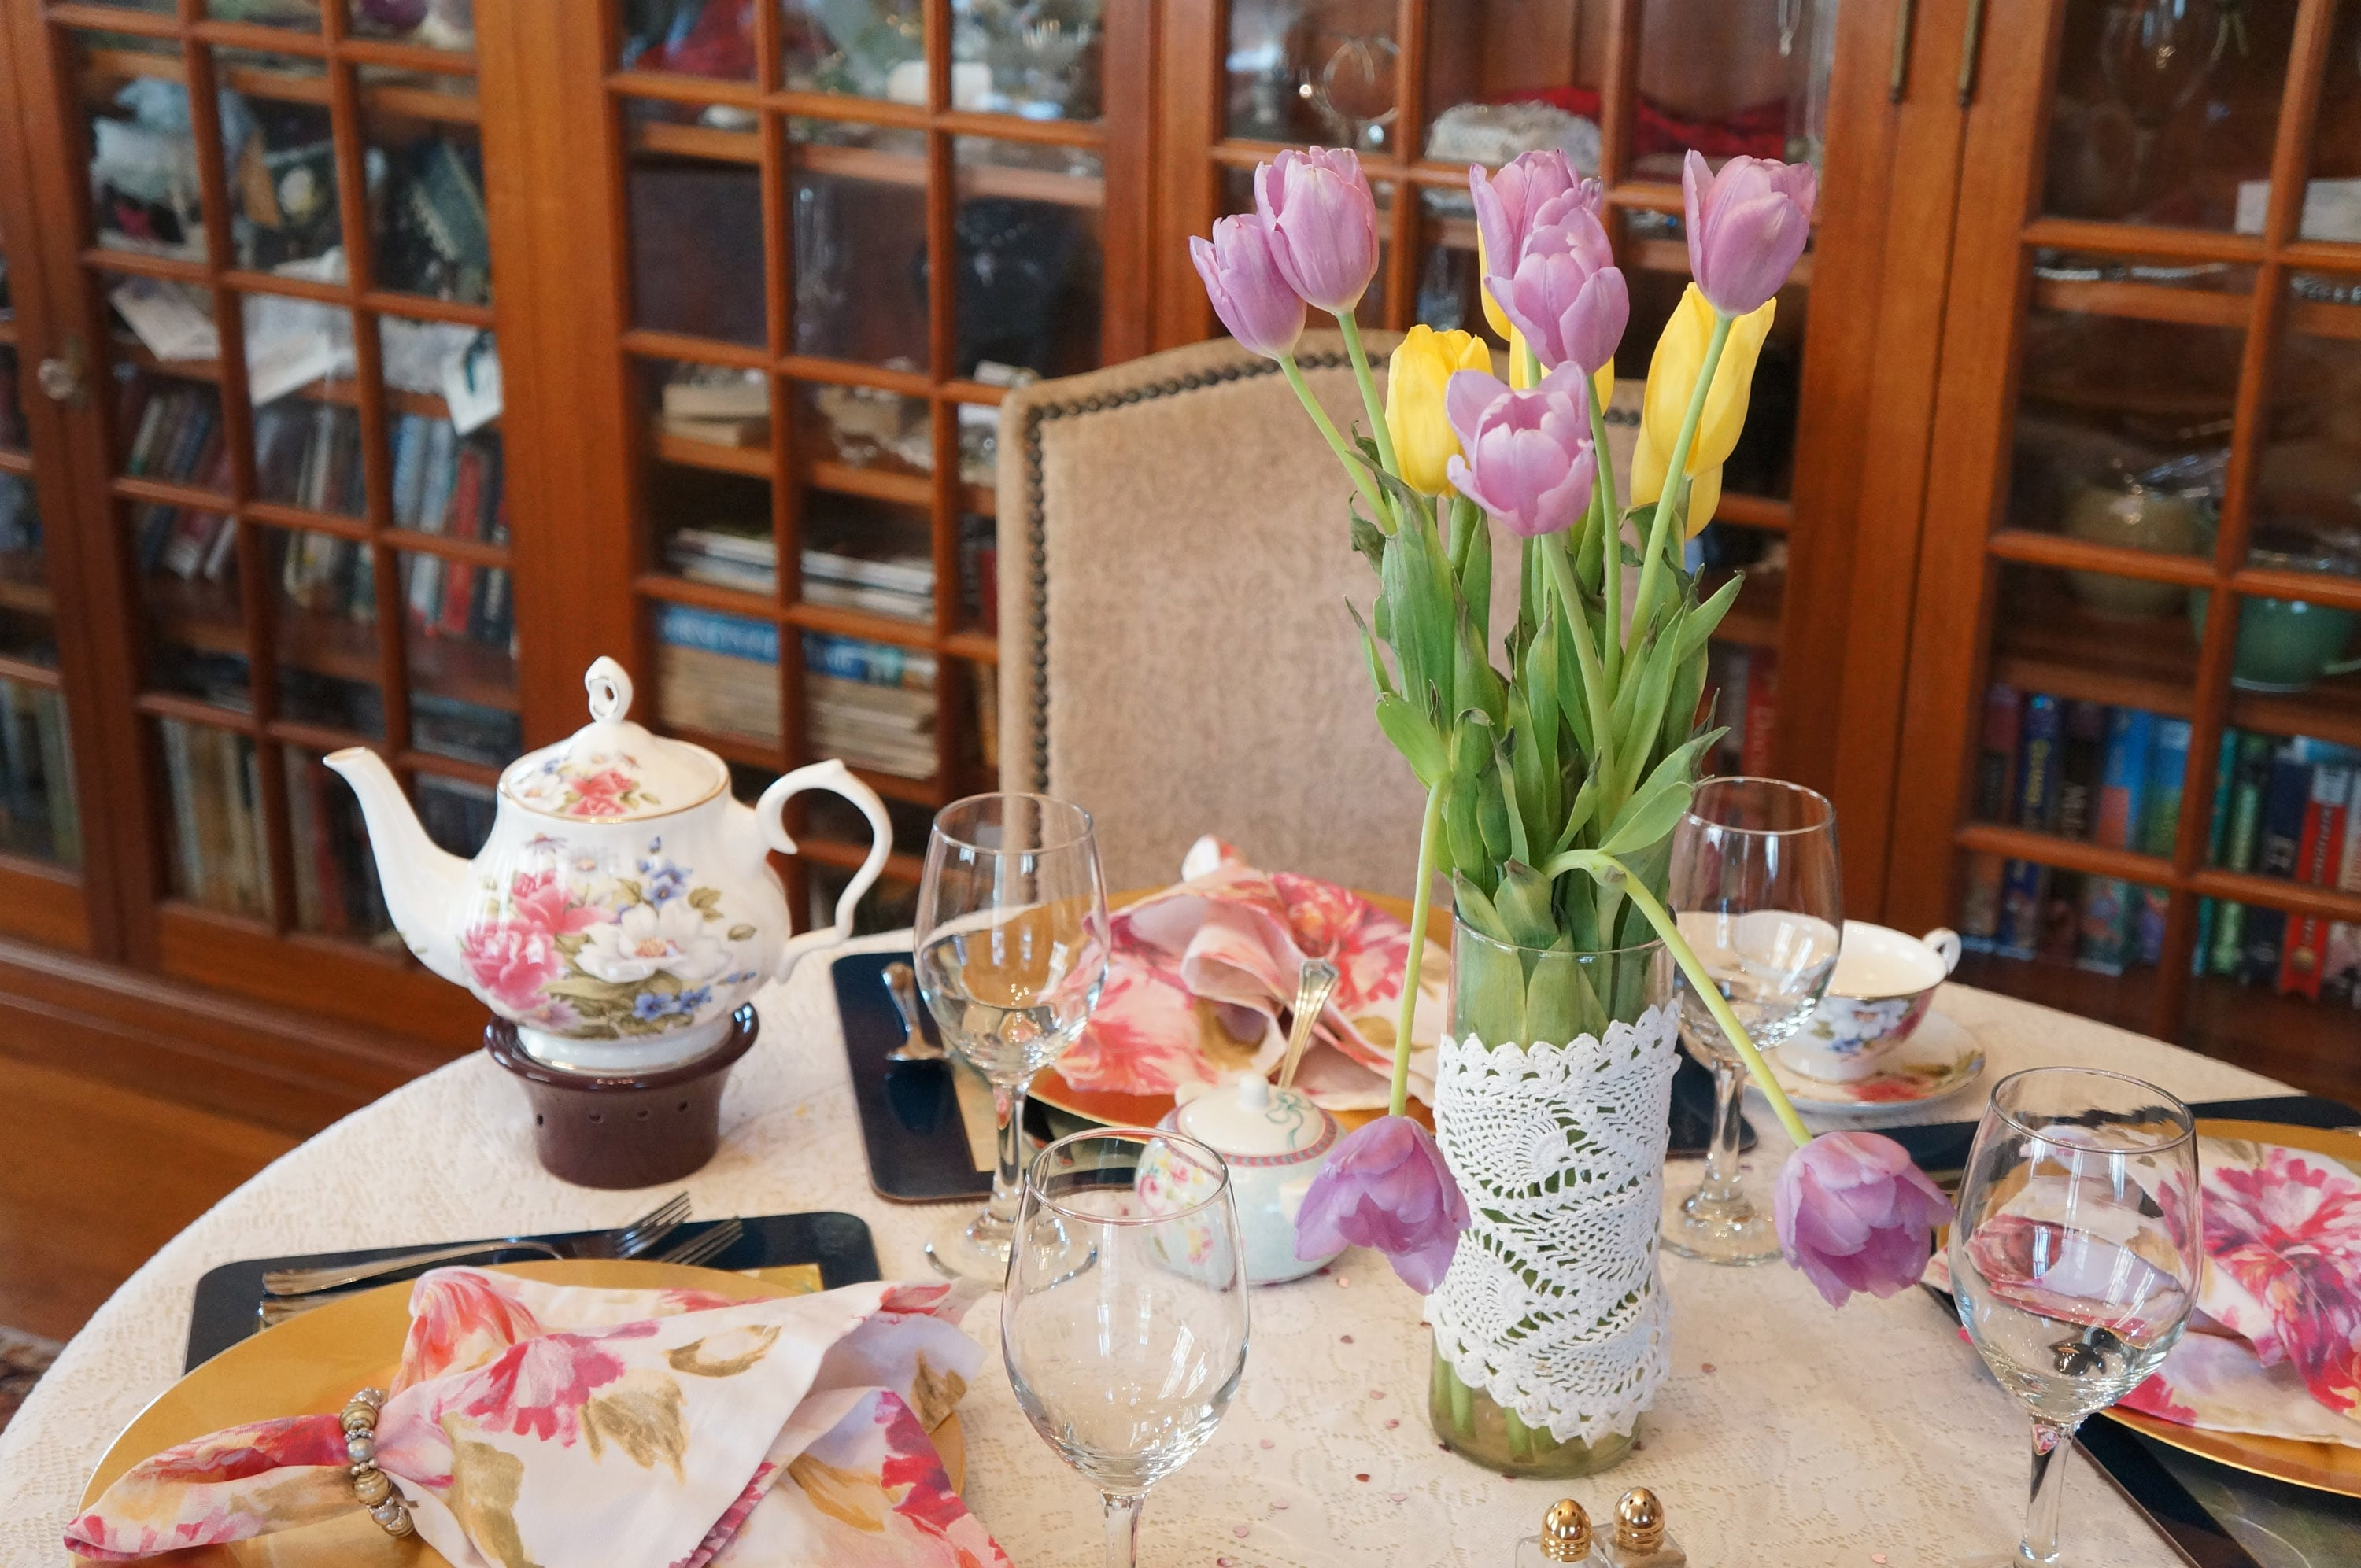 Here is a shot of a table in our tea parlor, a part of our seacoast Nh hotel. The image displays a beautiful flower centepiece, tea pot, and place settings ready for hapy guests.